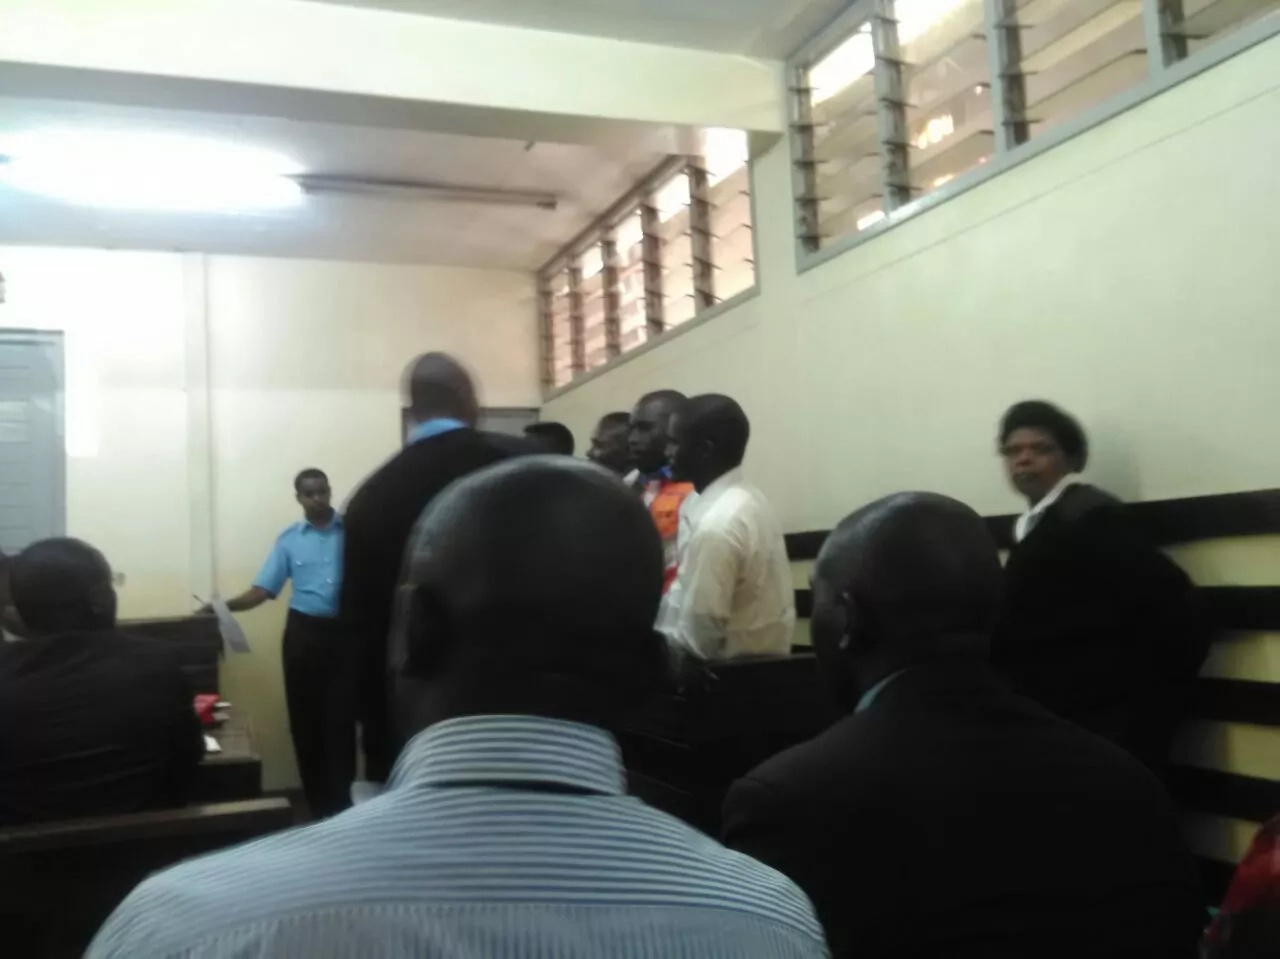 6 ODM youths 'who busted 3 people with BVR kits' in Eastleigh charged with robbery with violence